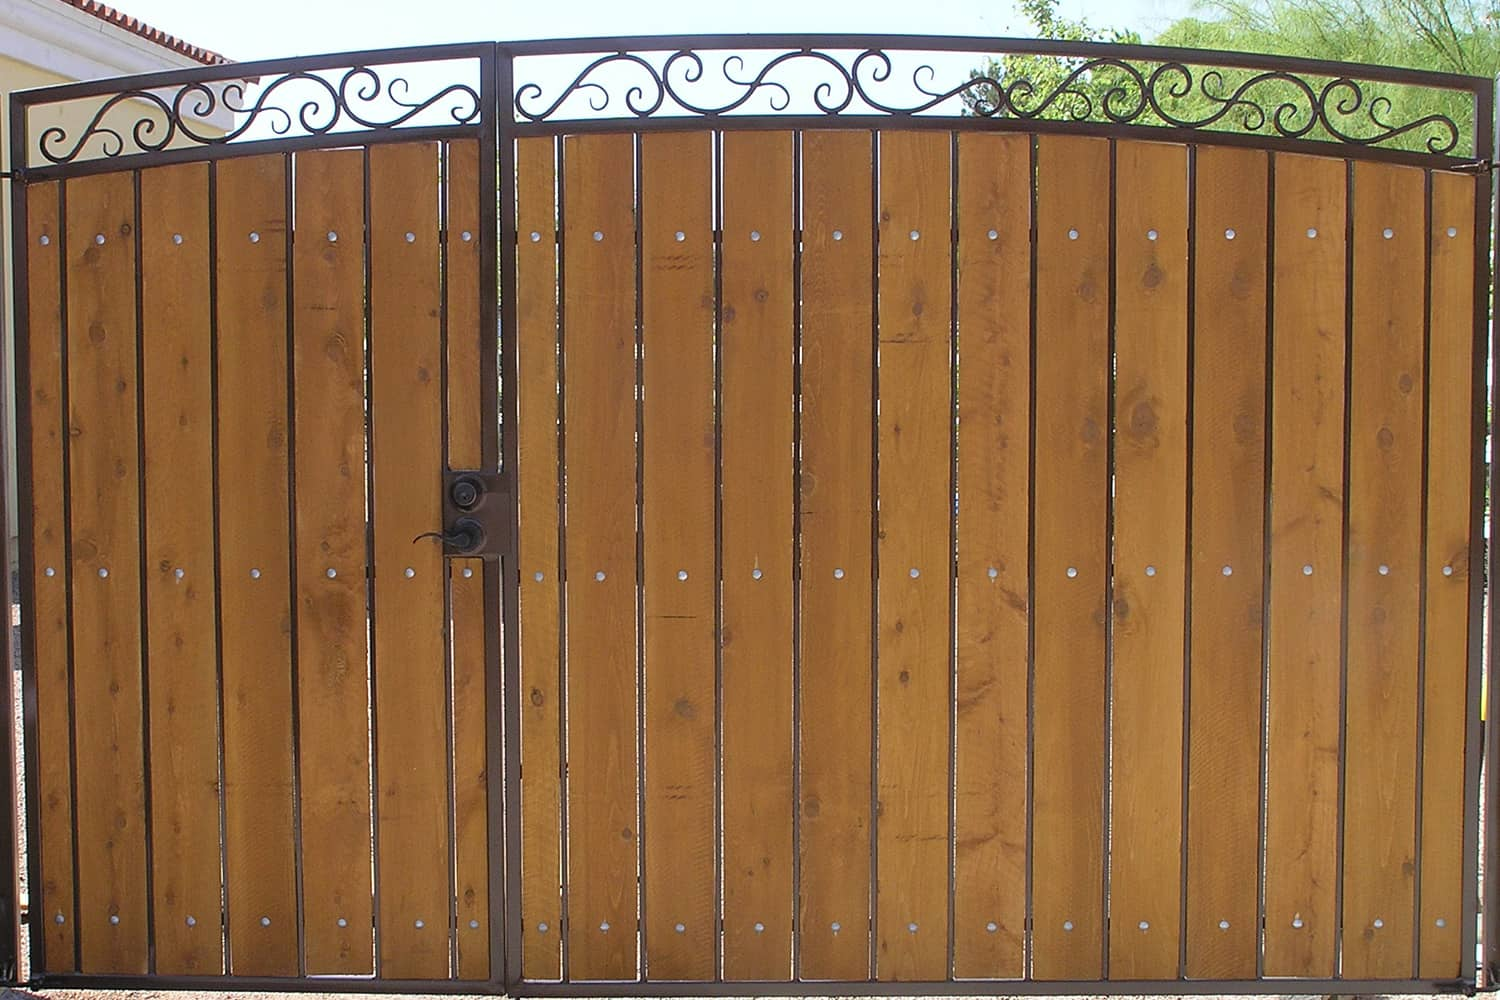 Decorative RV Gate with Stained and Sealed Wood